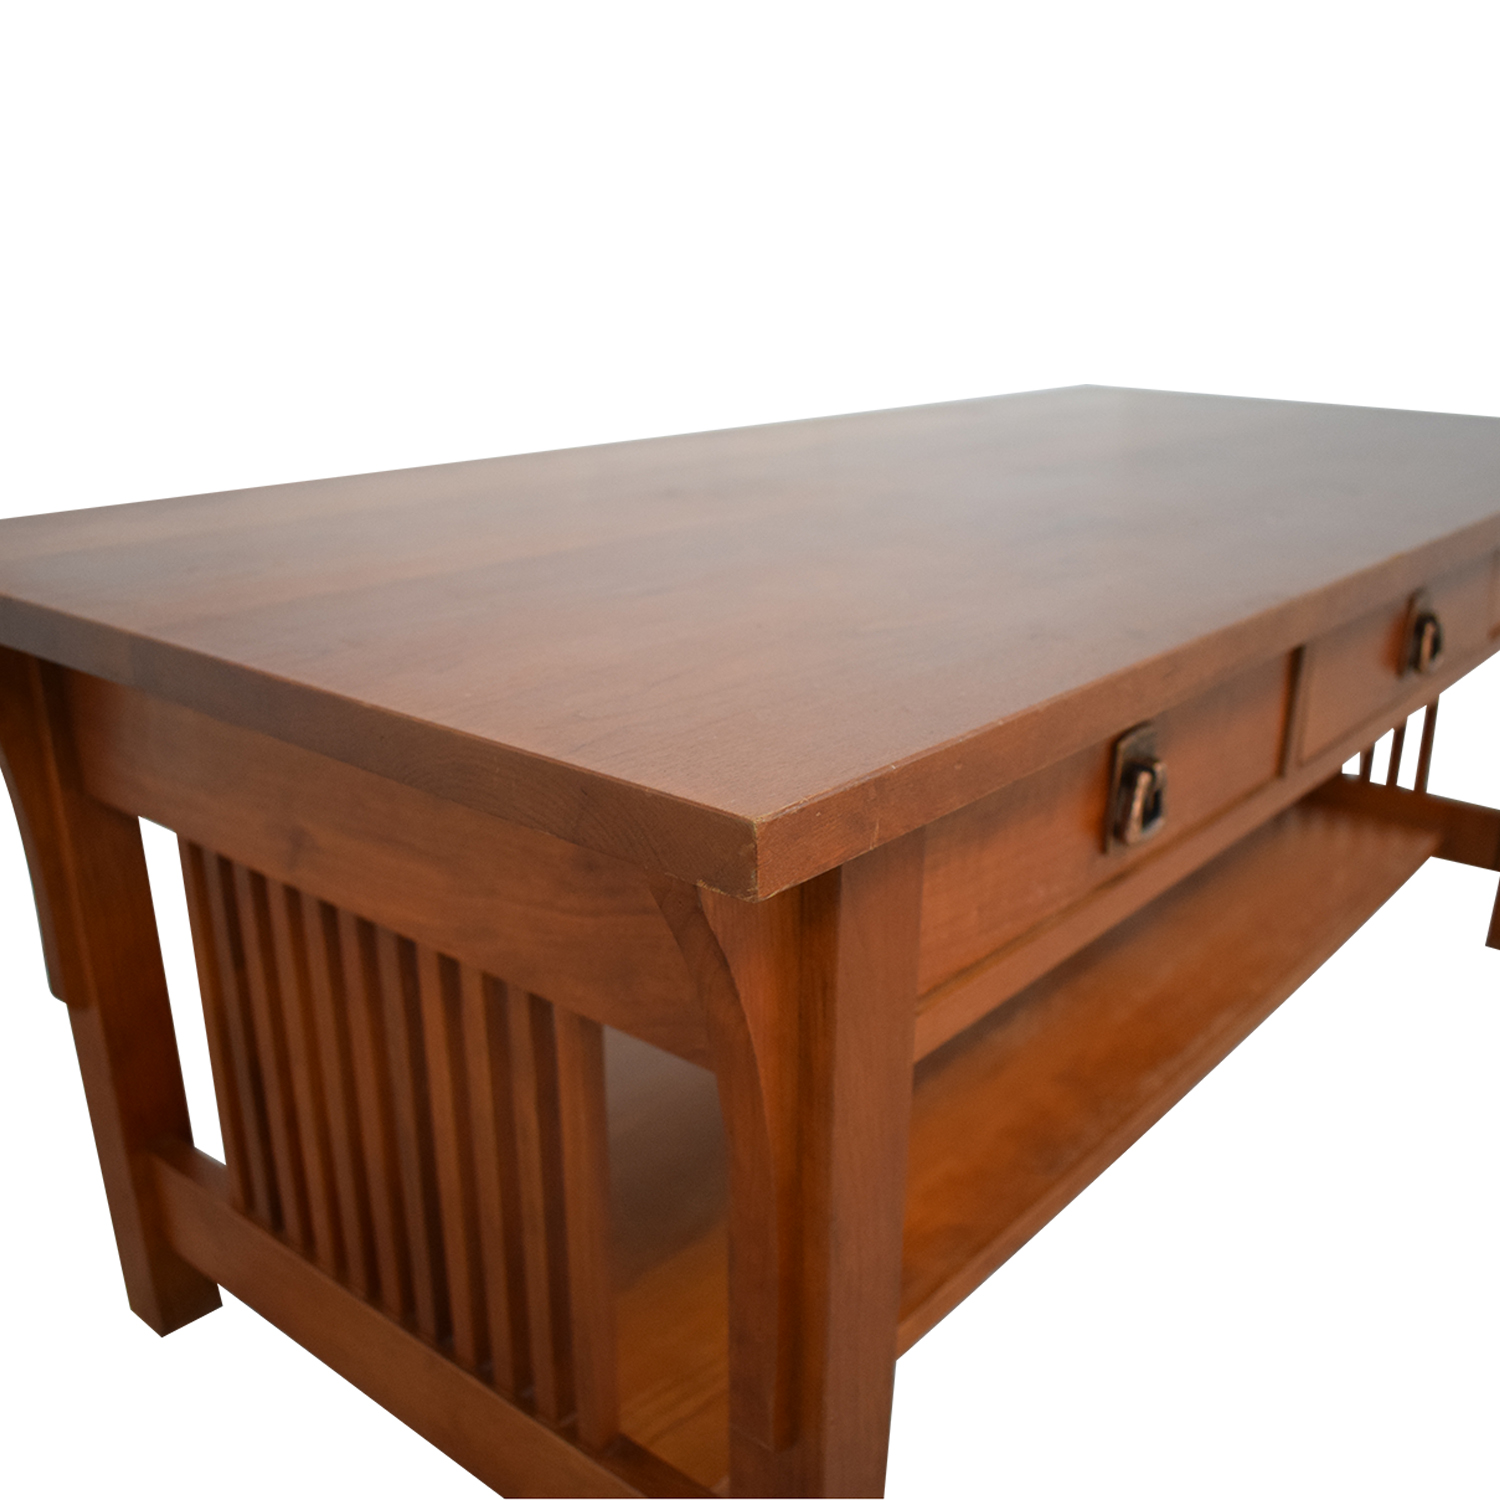 Stickley Furniture Stickley Coffee Table coupon